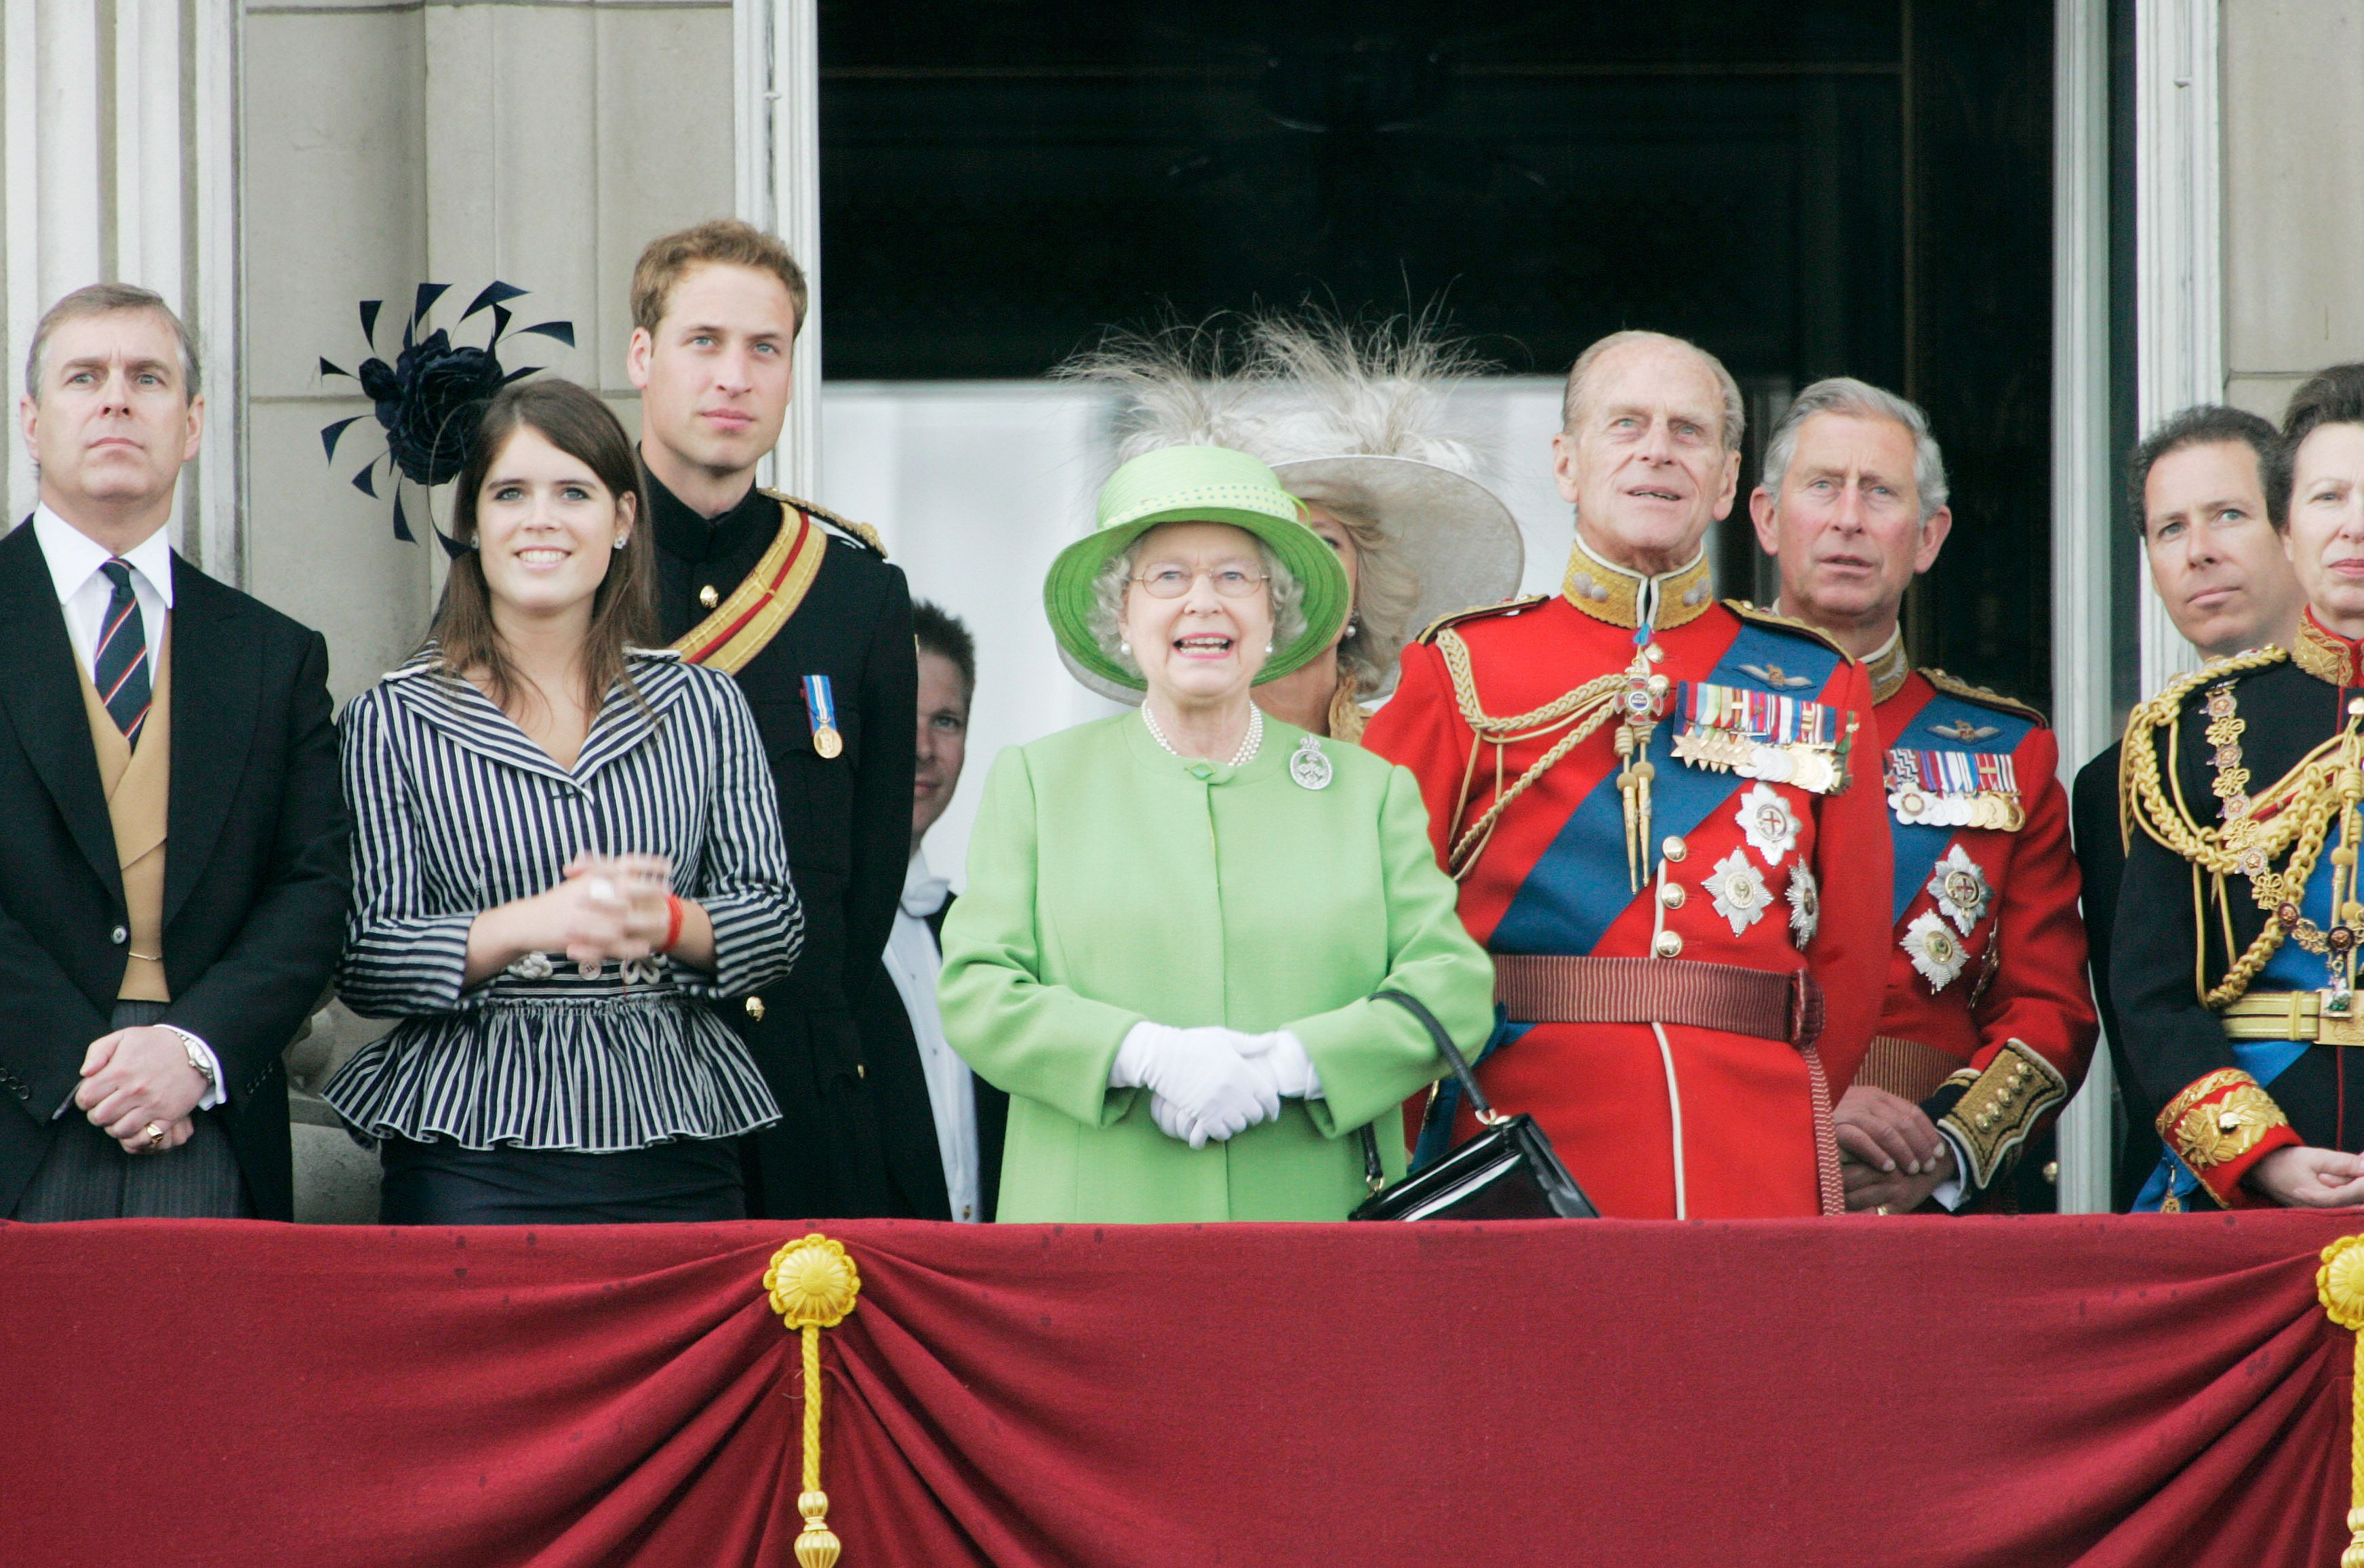 Some key members of the royal family might skip 2018's second royal wedding.